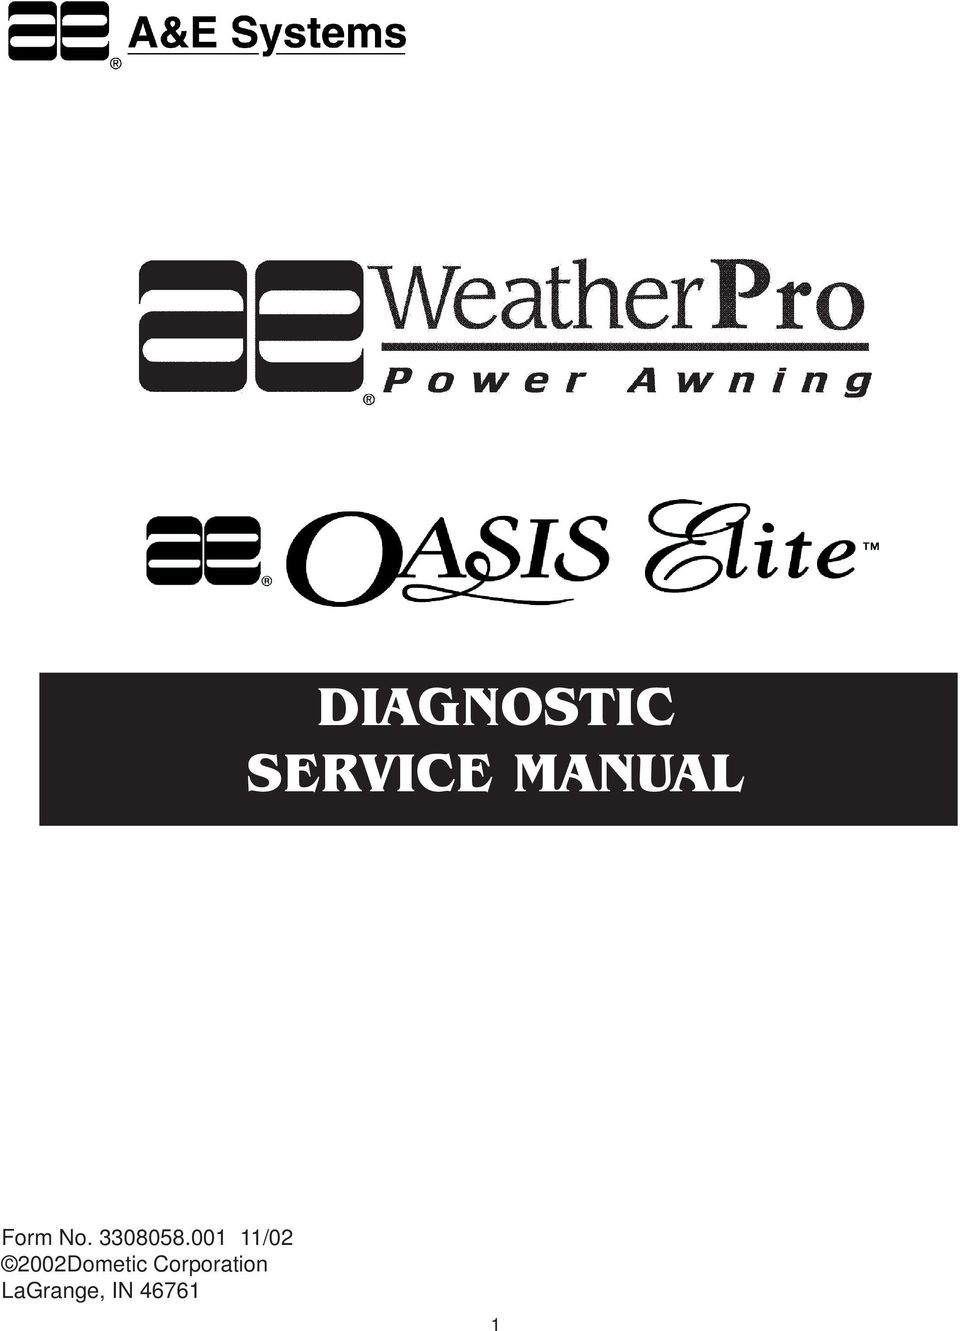 DIAGNOSTIC SERVICE MANUAL - PDF